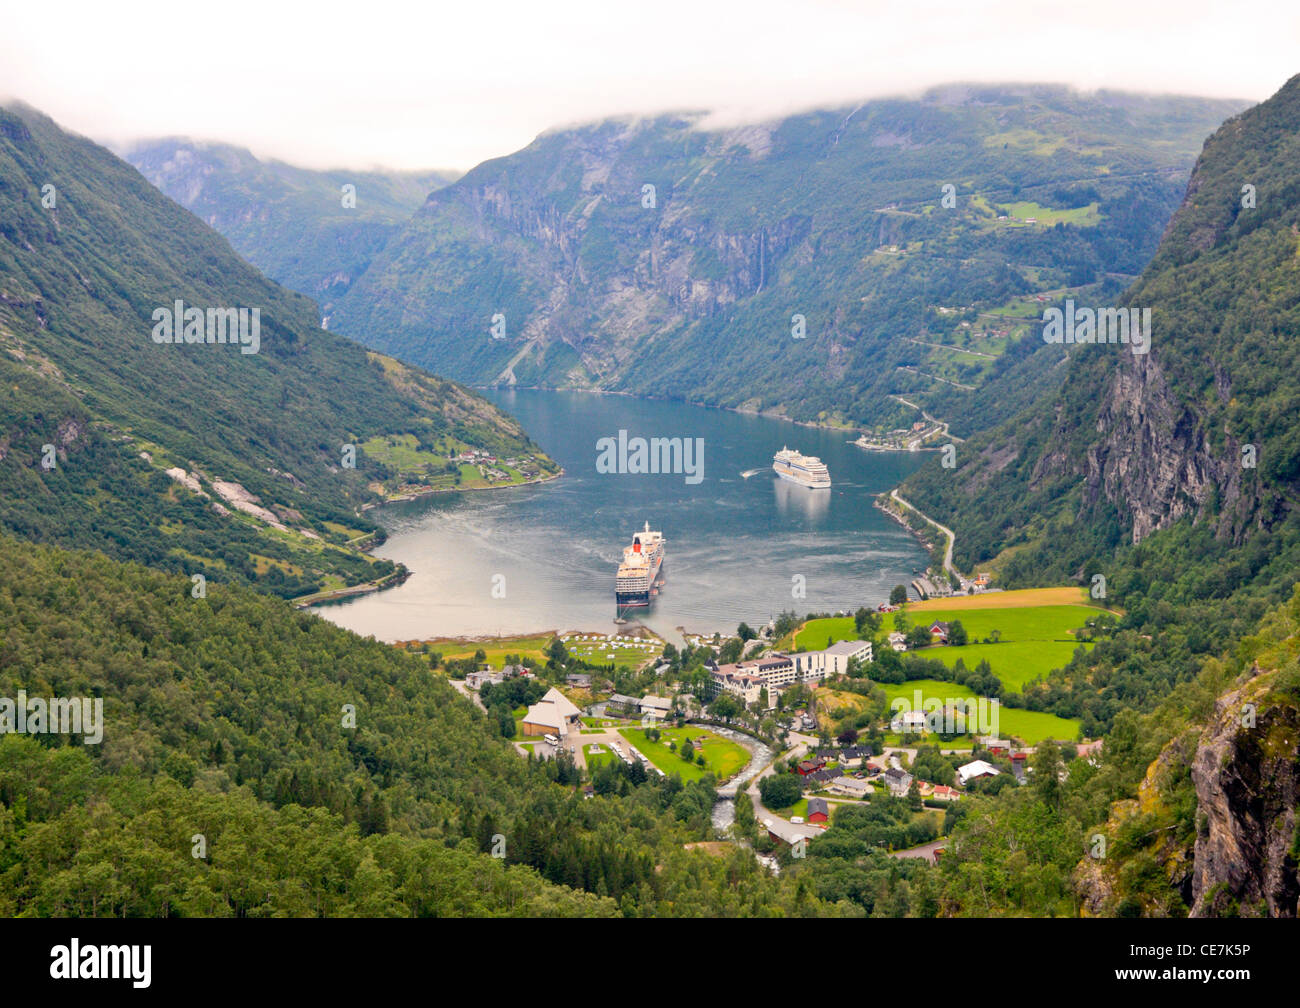 View from Trollstigen Viewpoint on the Geiranger Fjord, near Hellesylt, Norway - Stock Image